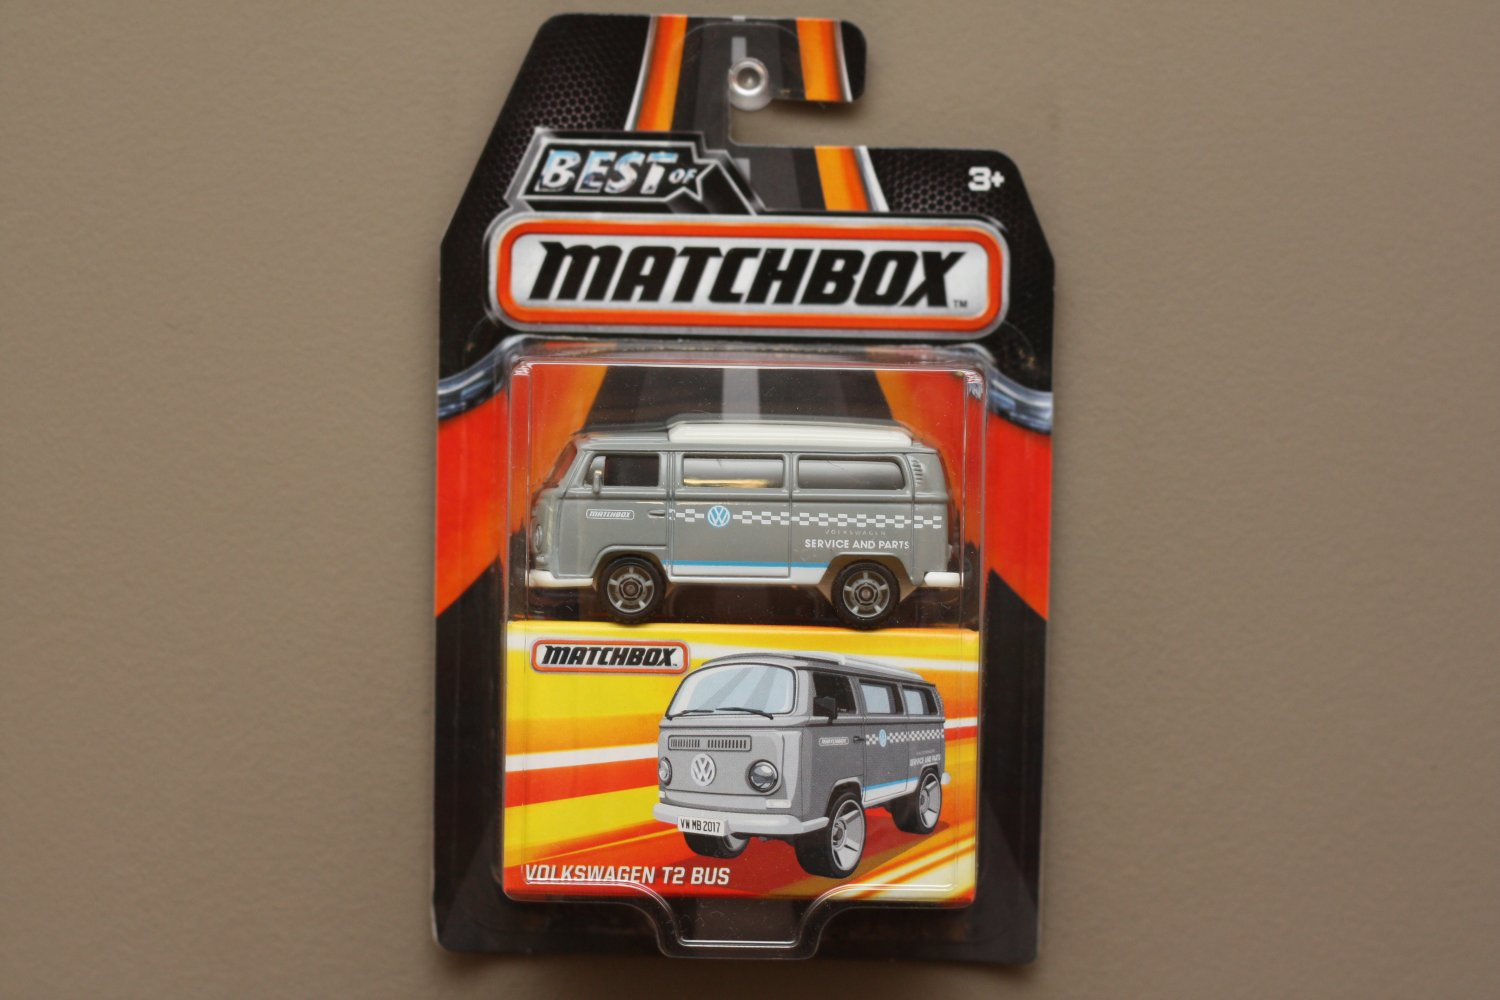 Matchbox 2017 Best Of Series Volkswagen T2 Bus